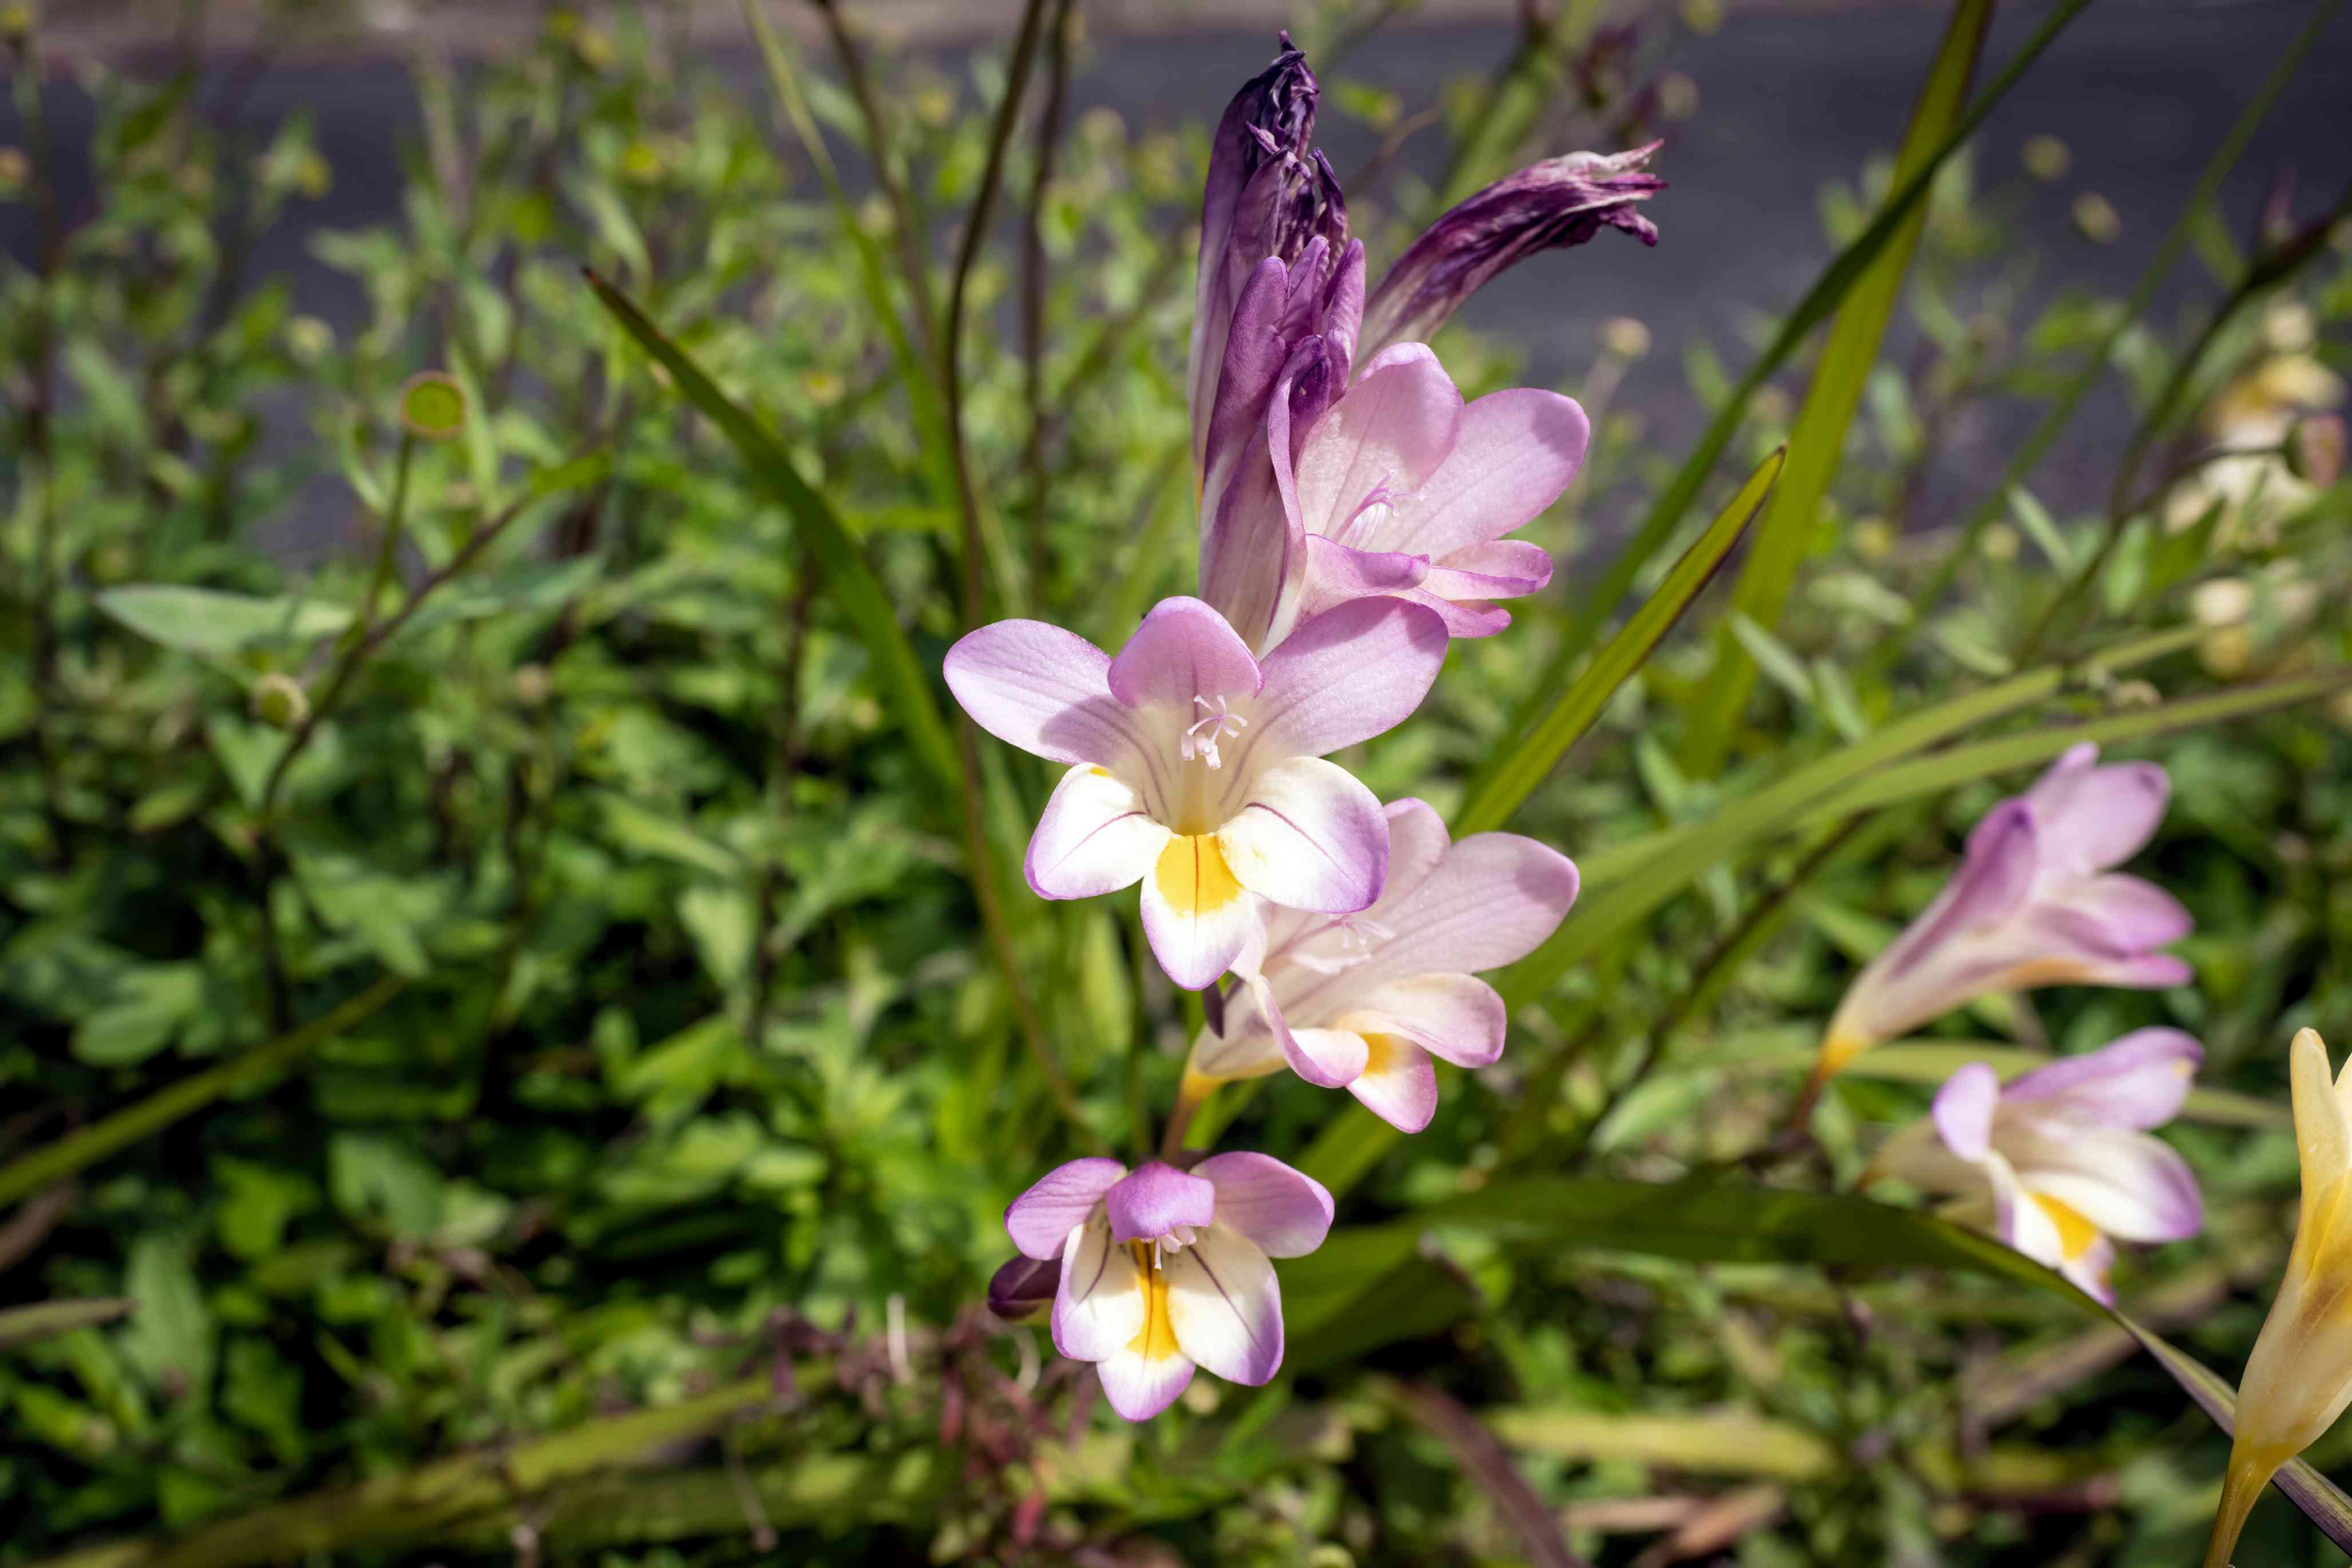 Freesia bulbs with light purple-pink and white flowers on thin stems in stunlight